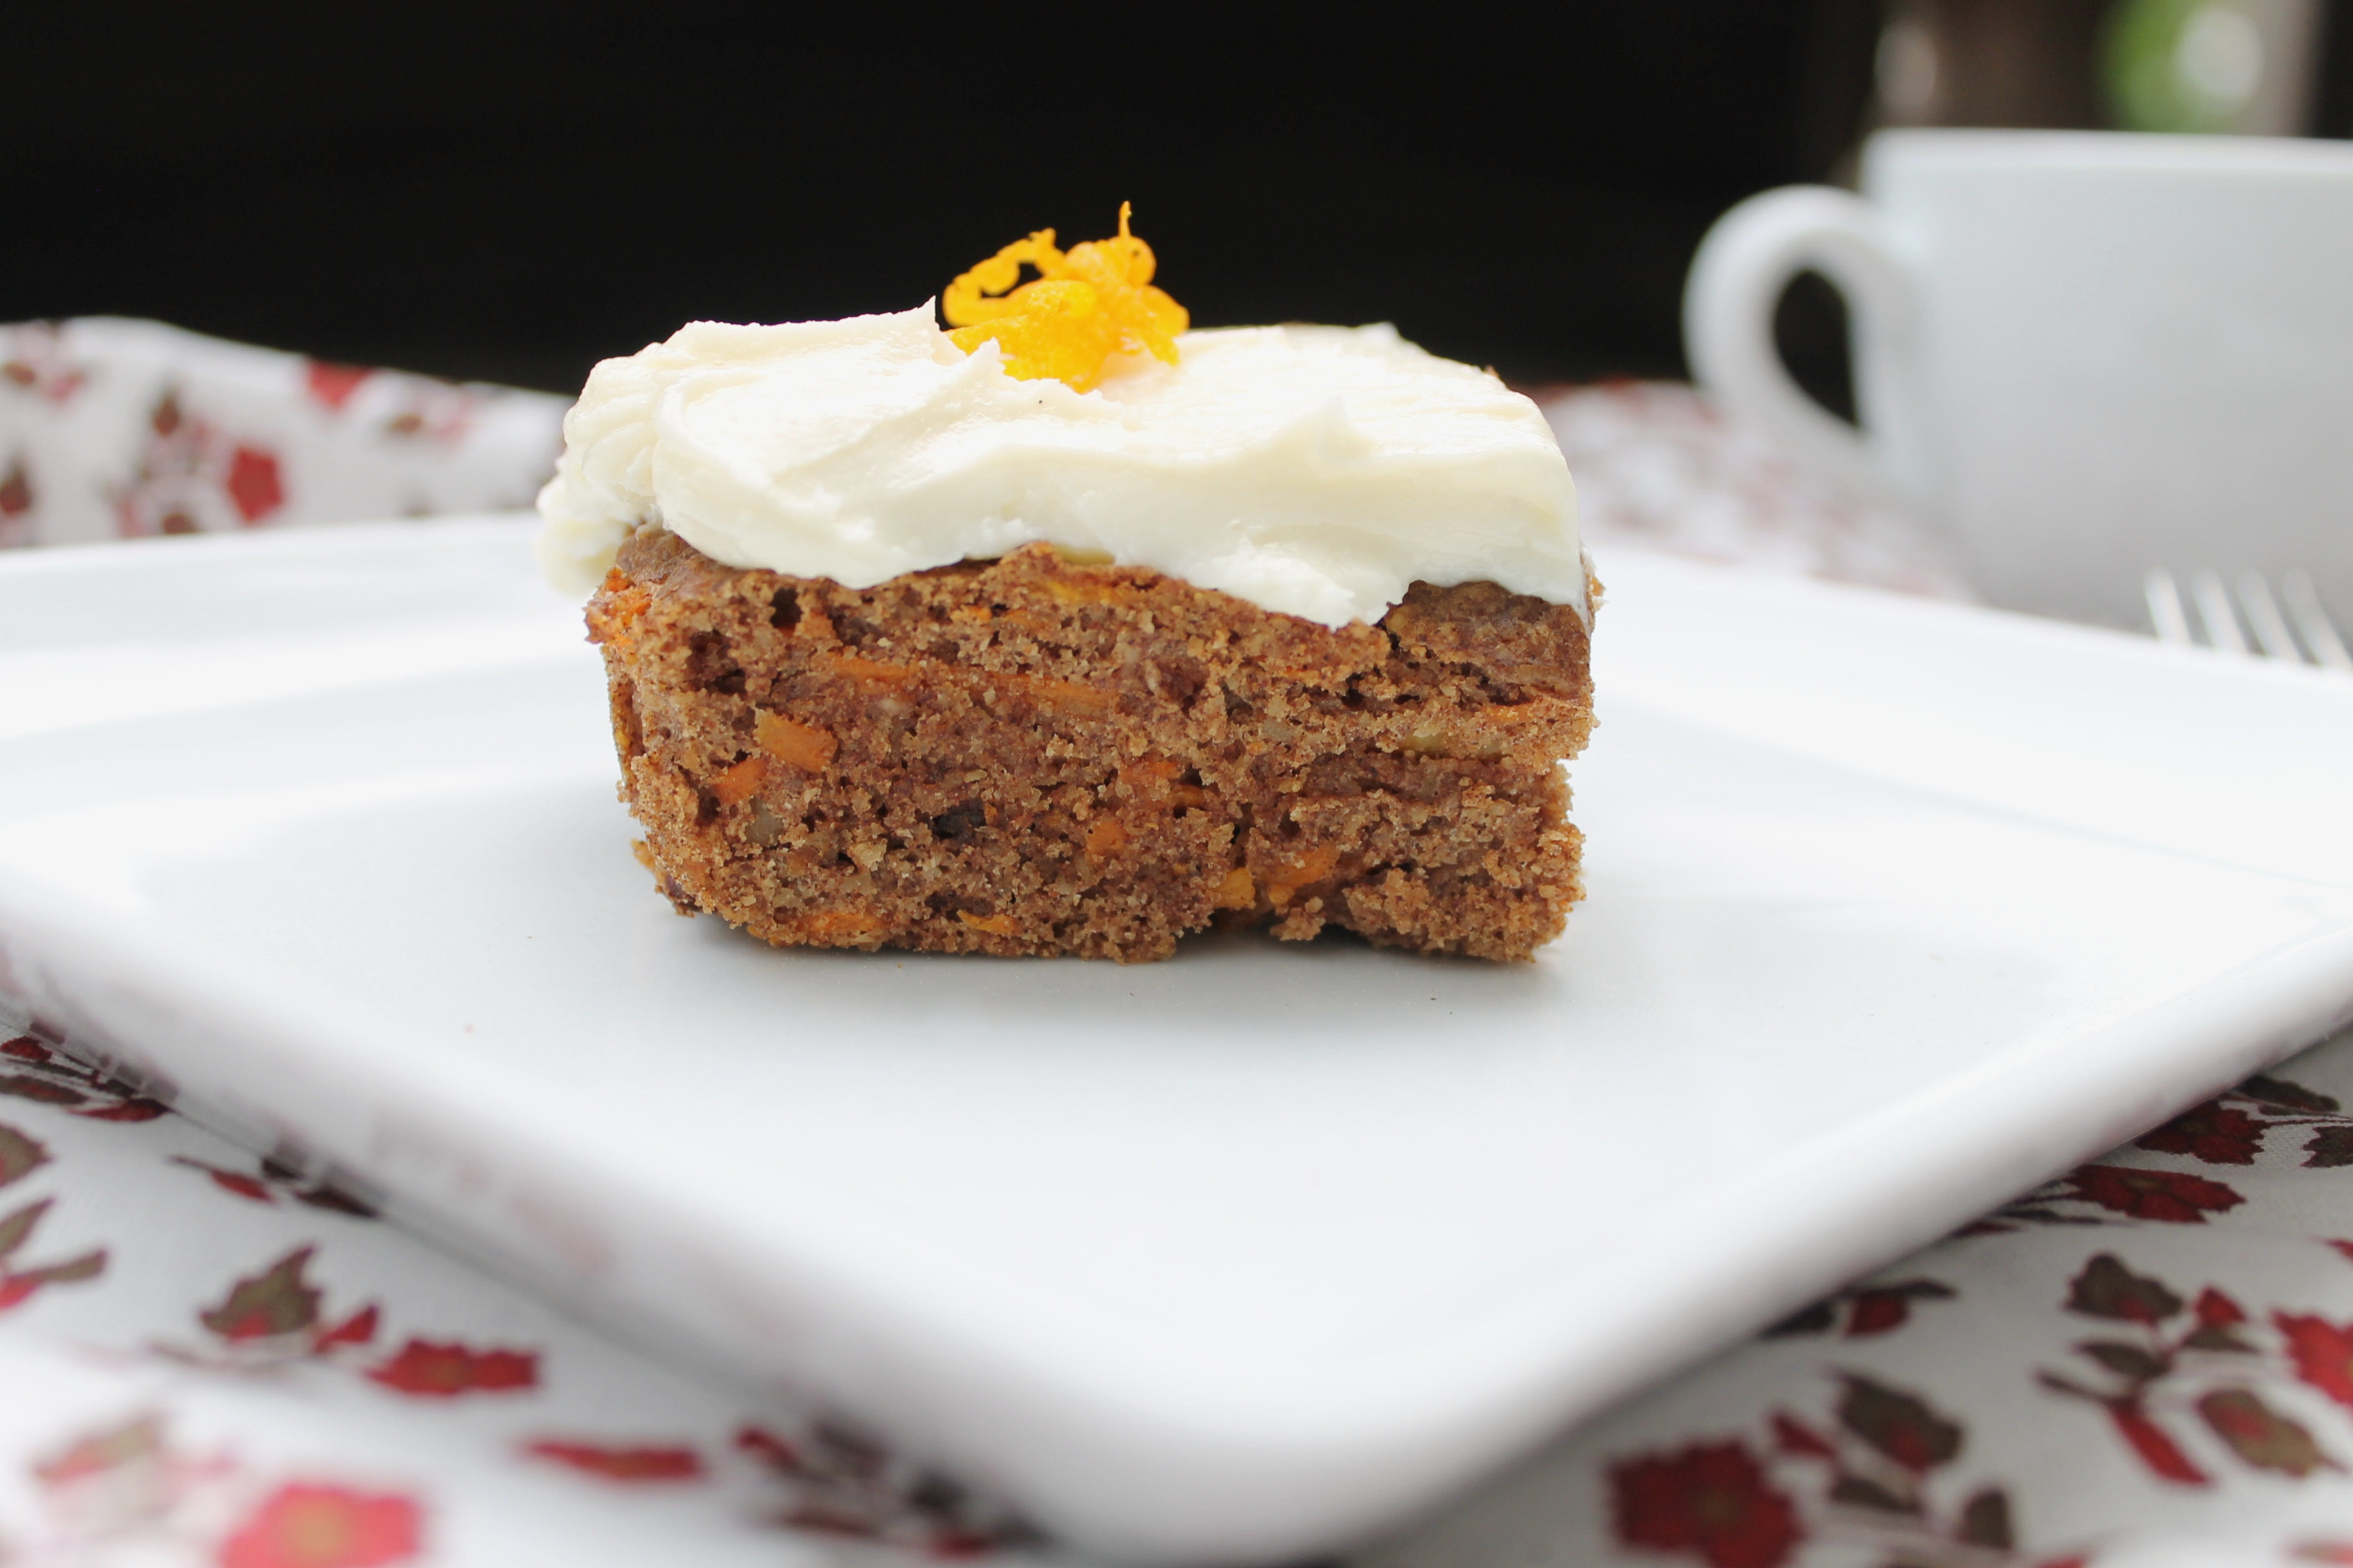 Paleo Carrot Cake with Creamy Dairy Free Frosting - Paleo Plan